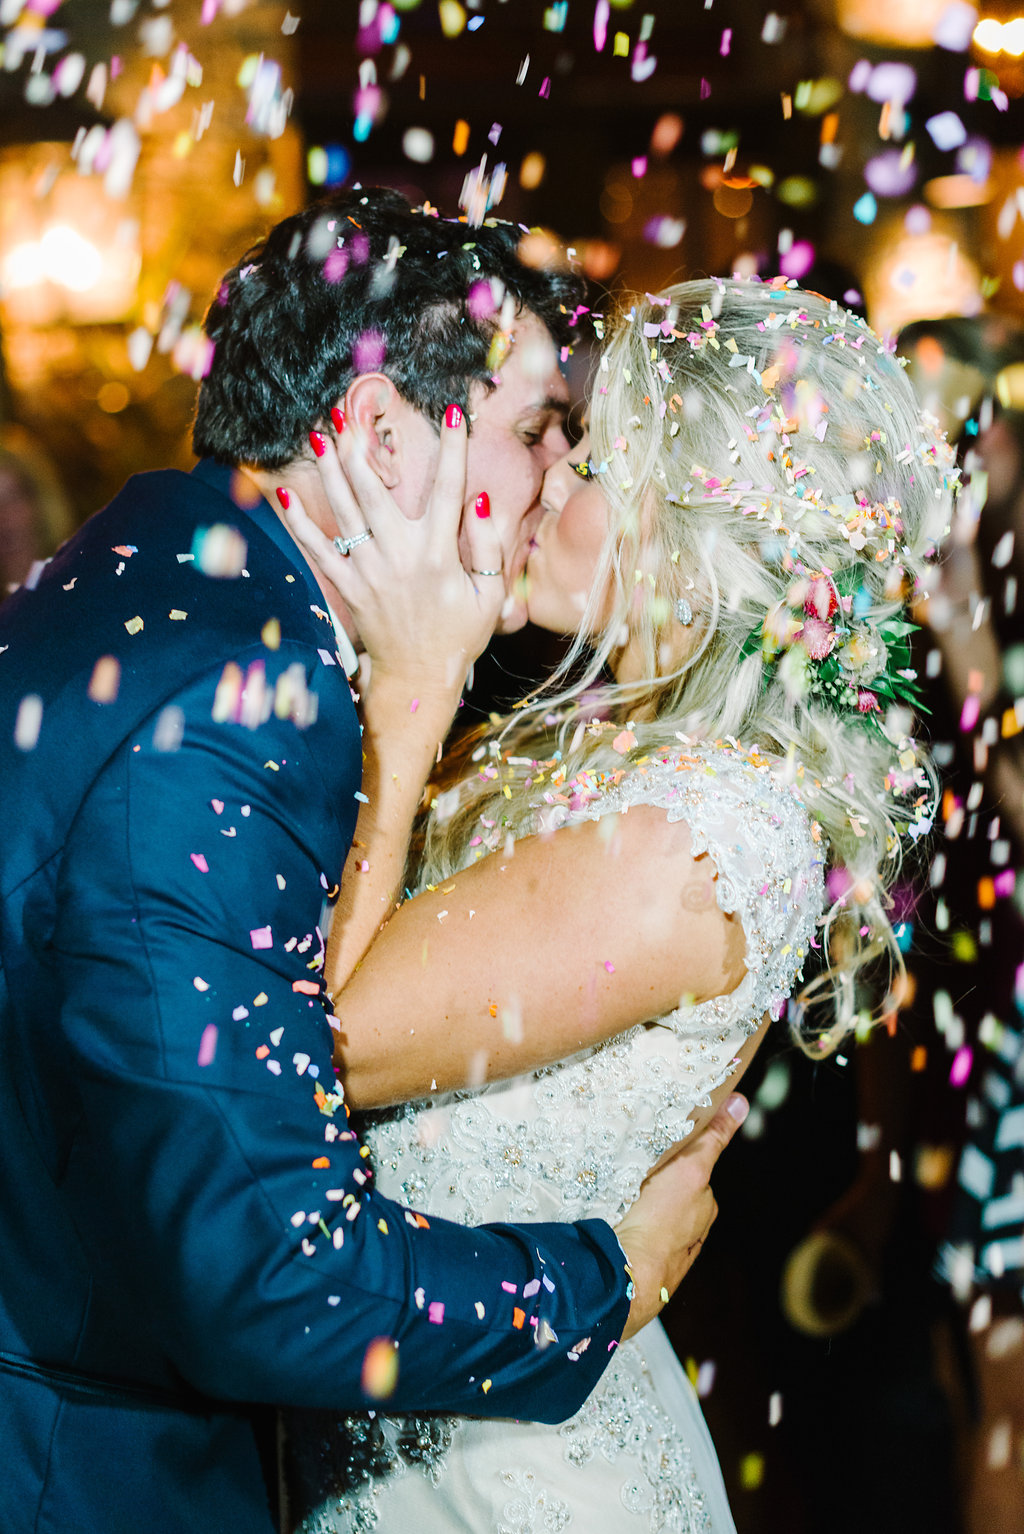 confetti at weddings - photo by Cathrine Taylor Photography http://ruffledblog.com/colorful-alabama-wedding-with-desert-accents